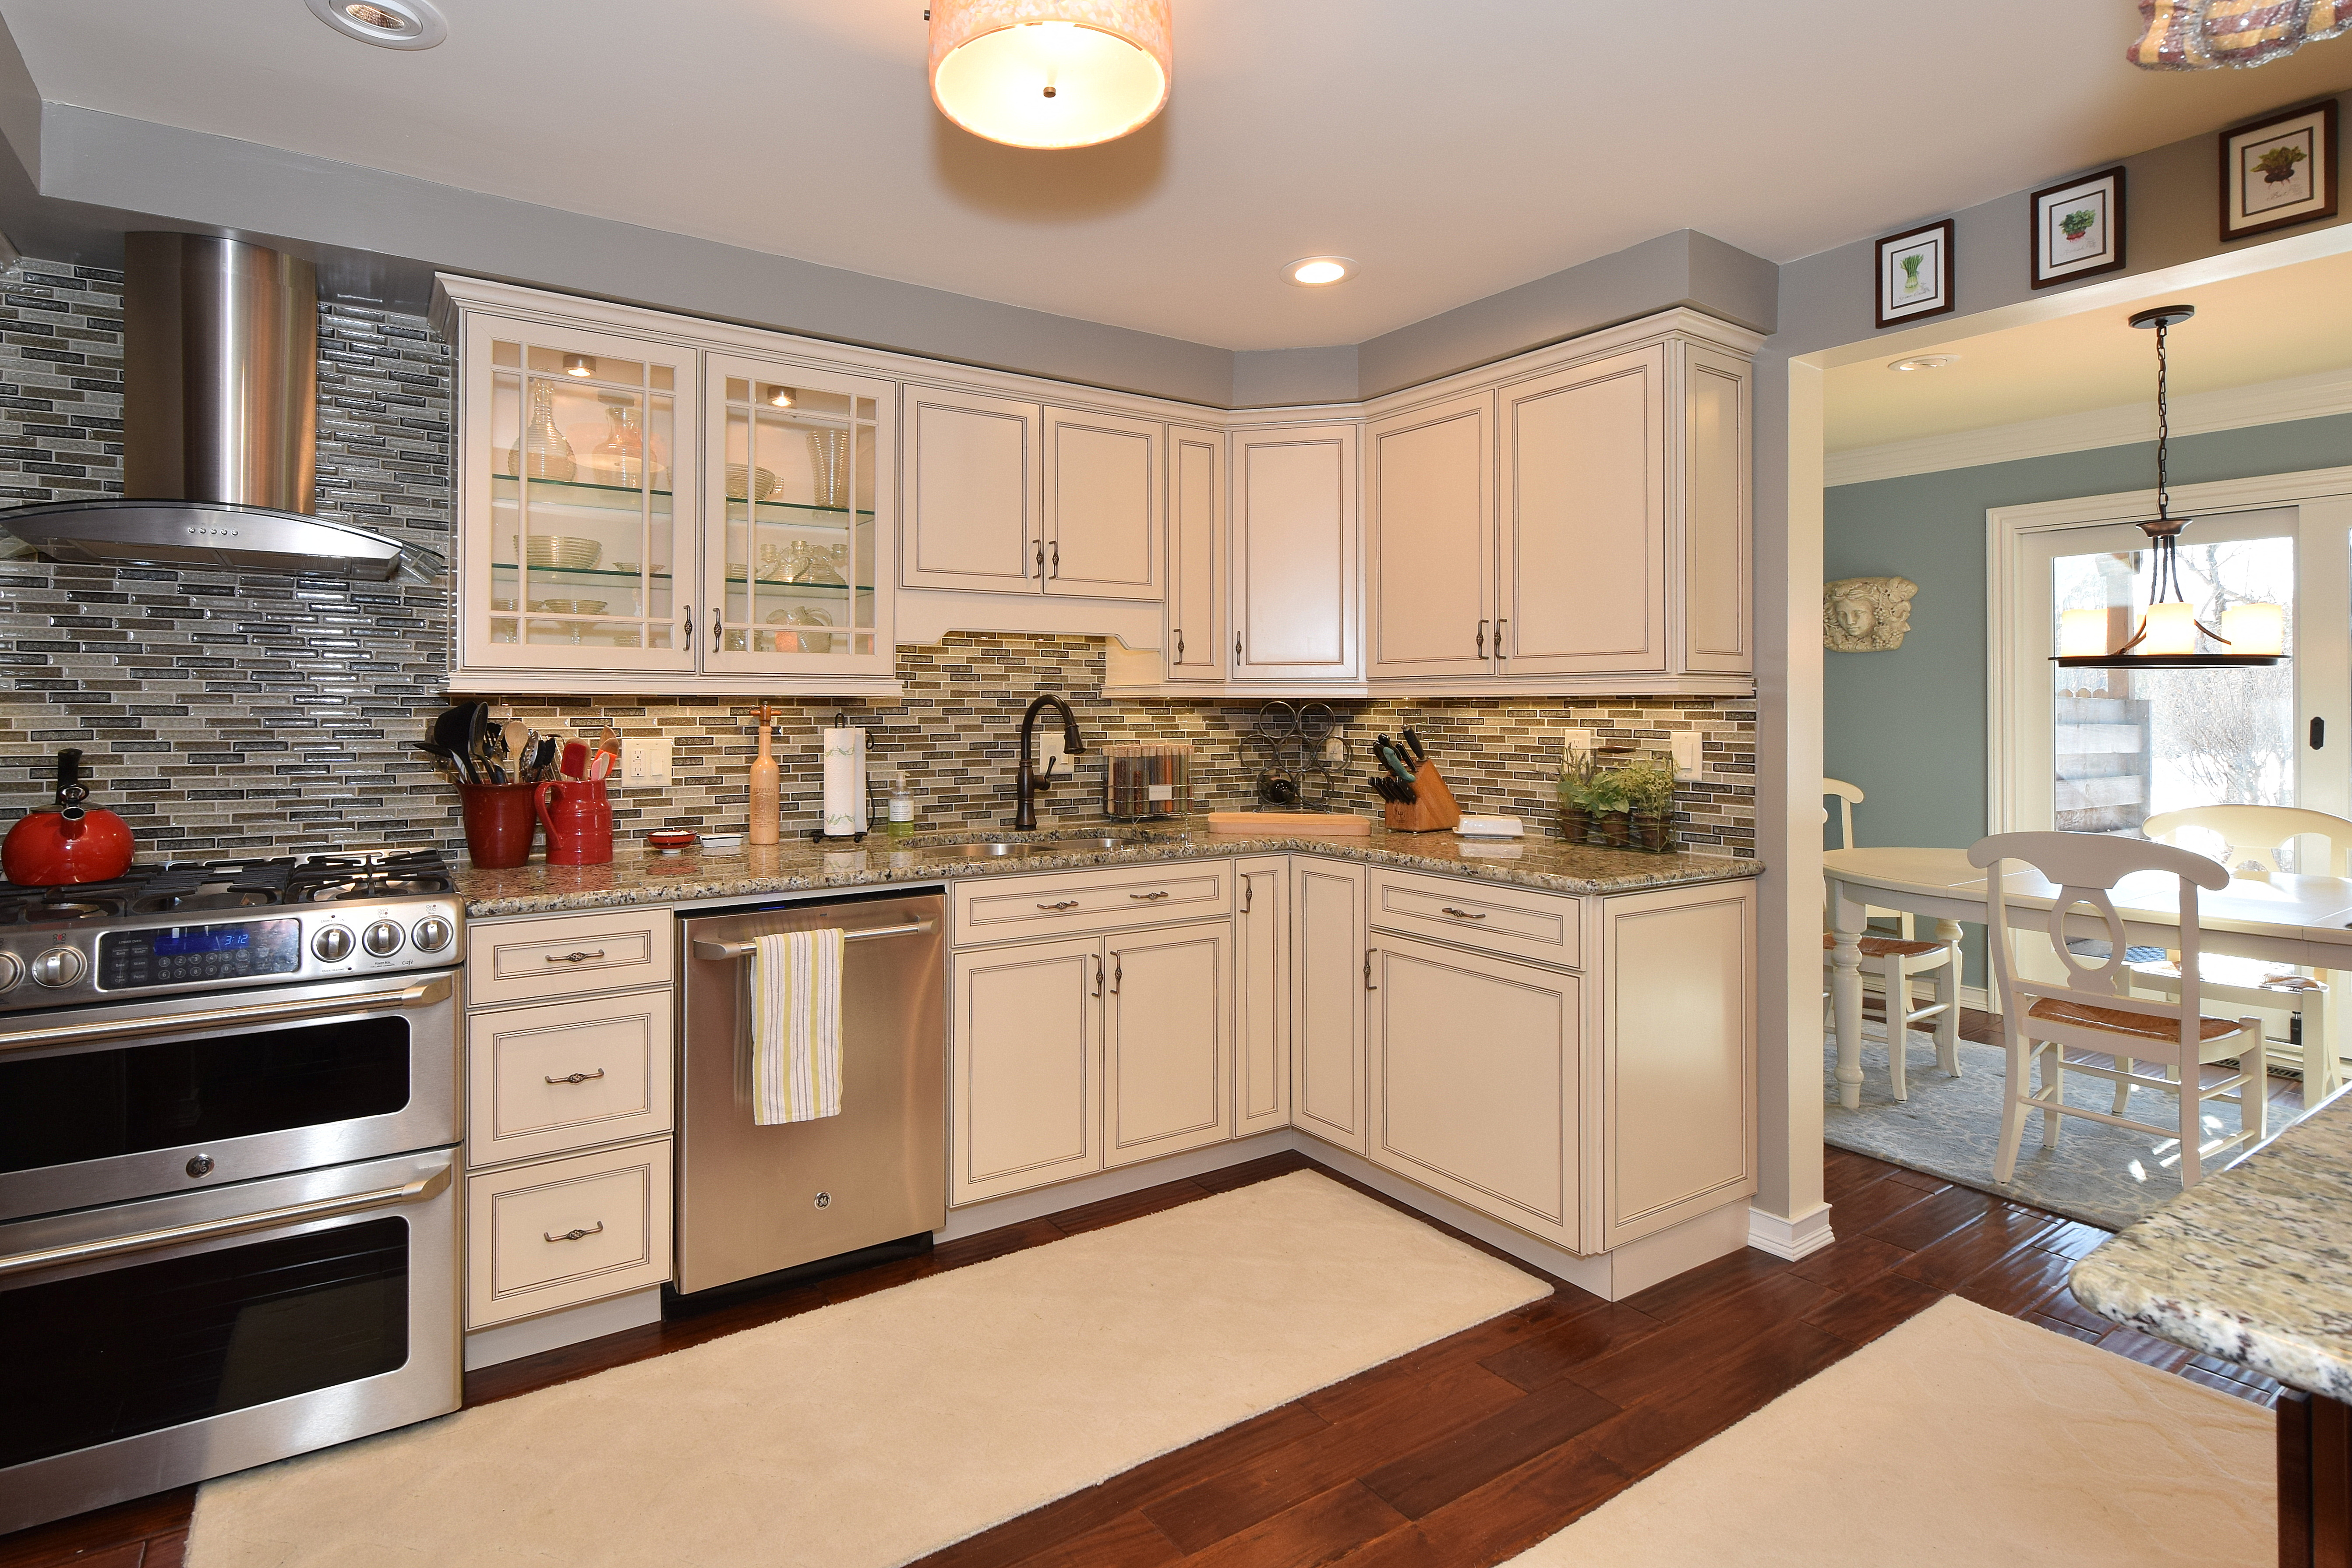 Colony farm condo renovation transformation bake real estate for Beach condo kitchen ideas